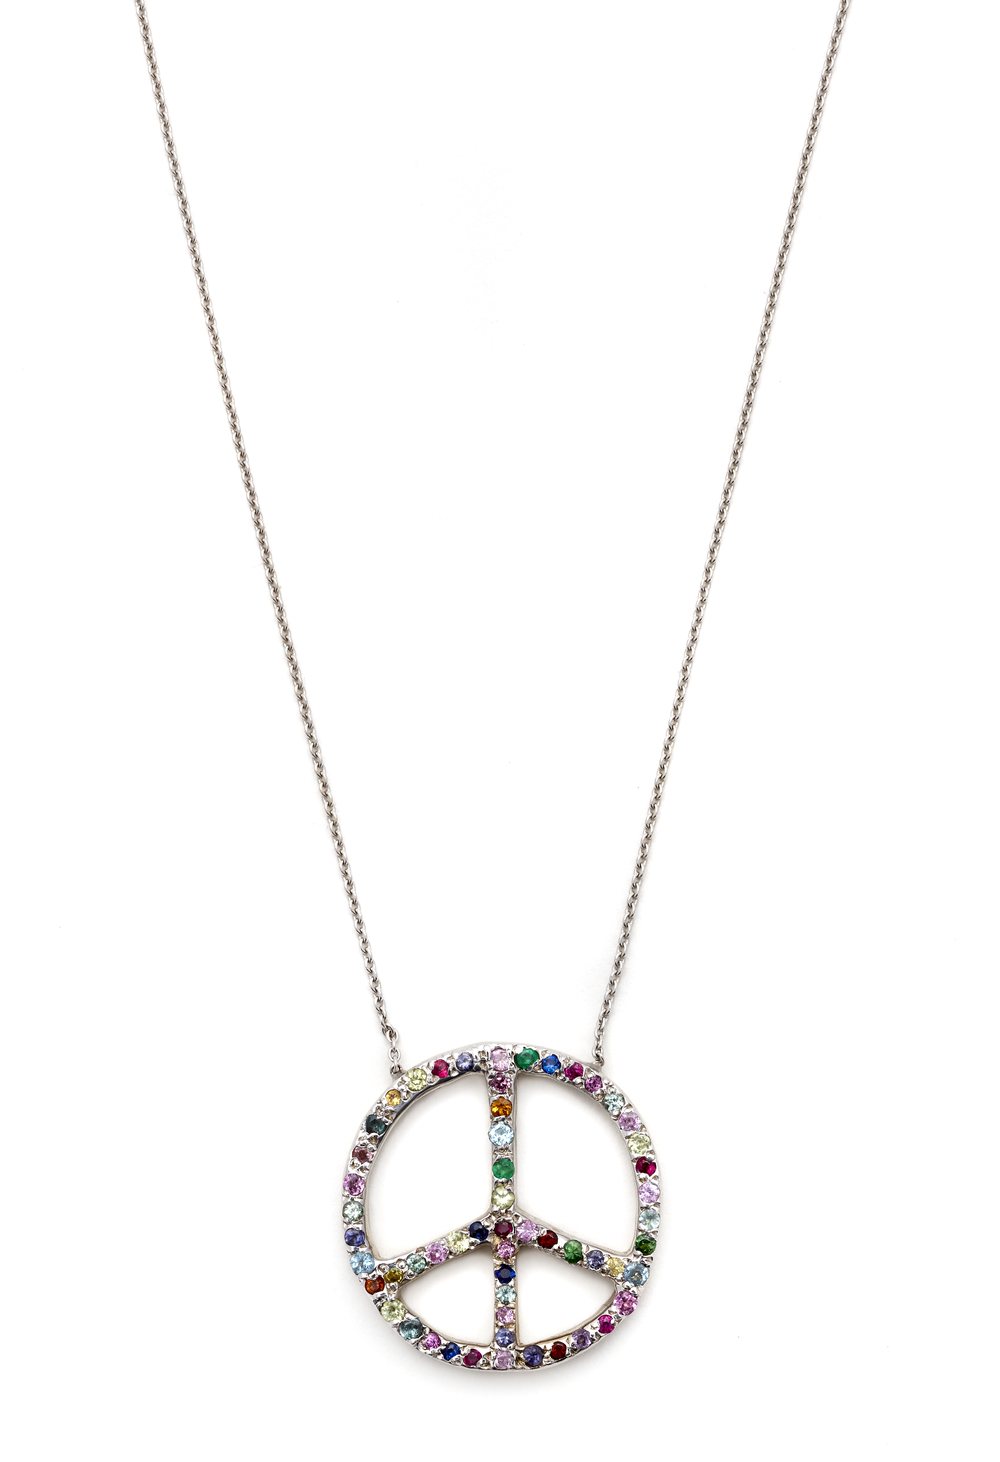 Necklace_WhiteGoldPeaceSignMulticolor.jpg